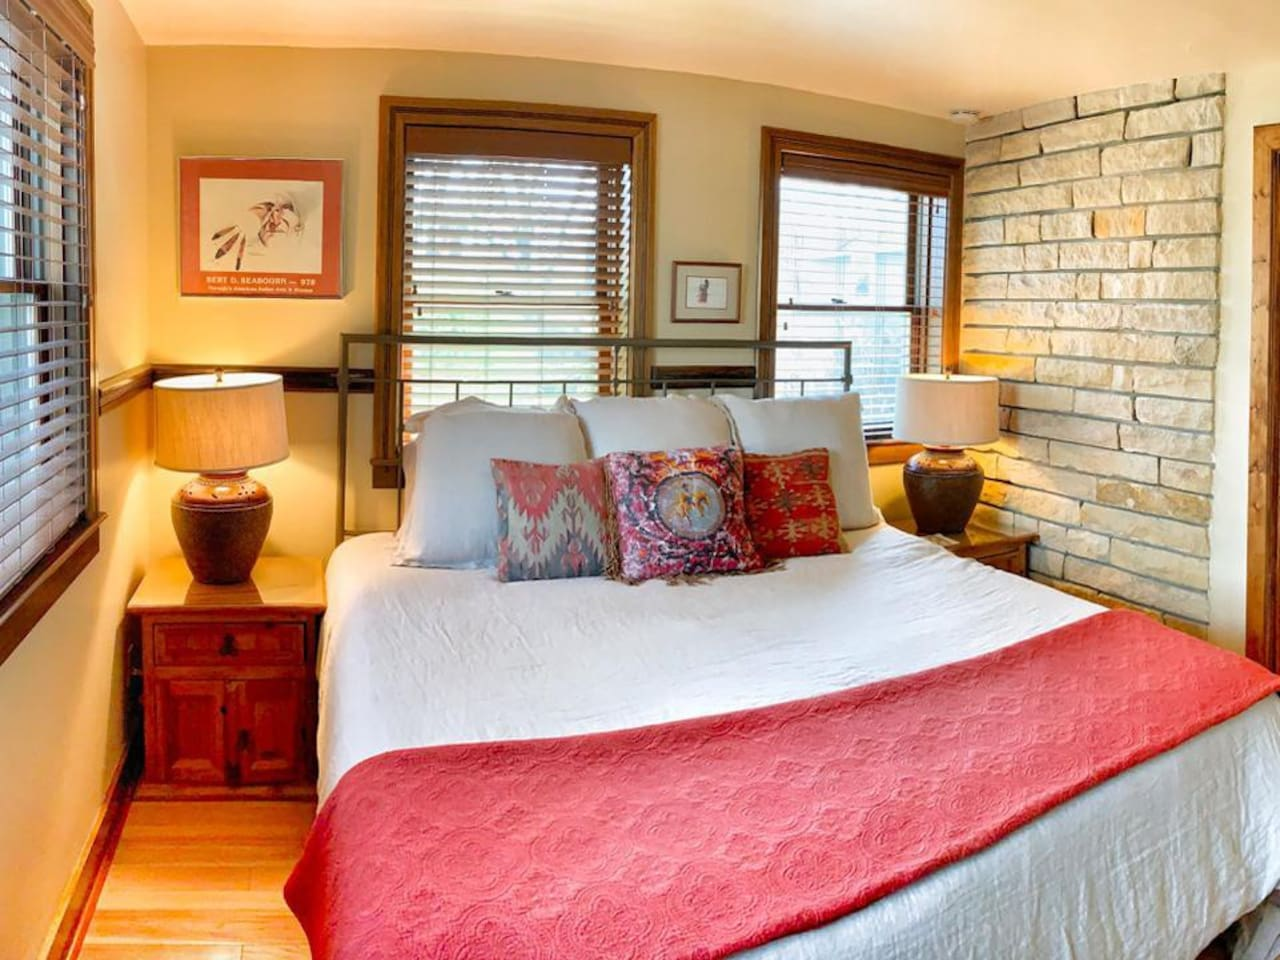 Rock Chalk - Nice Spacious Suite with adjoining room featuring a desk and cozy chair